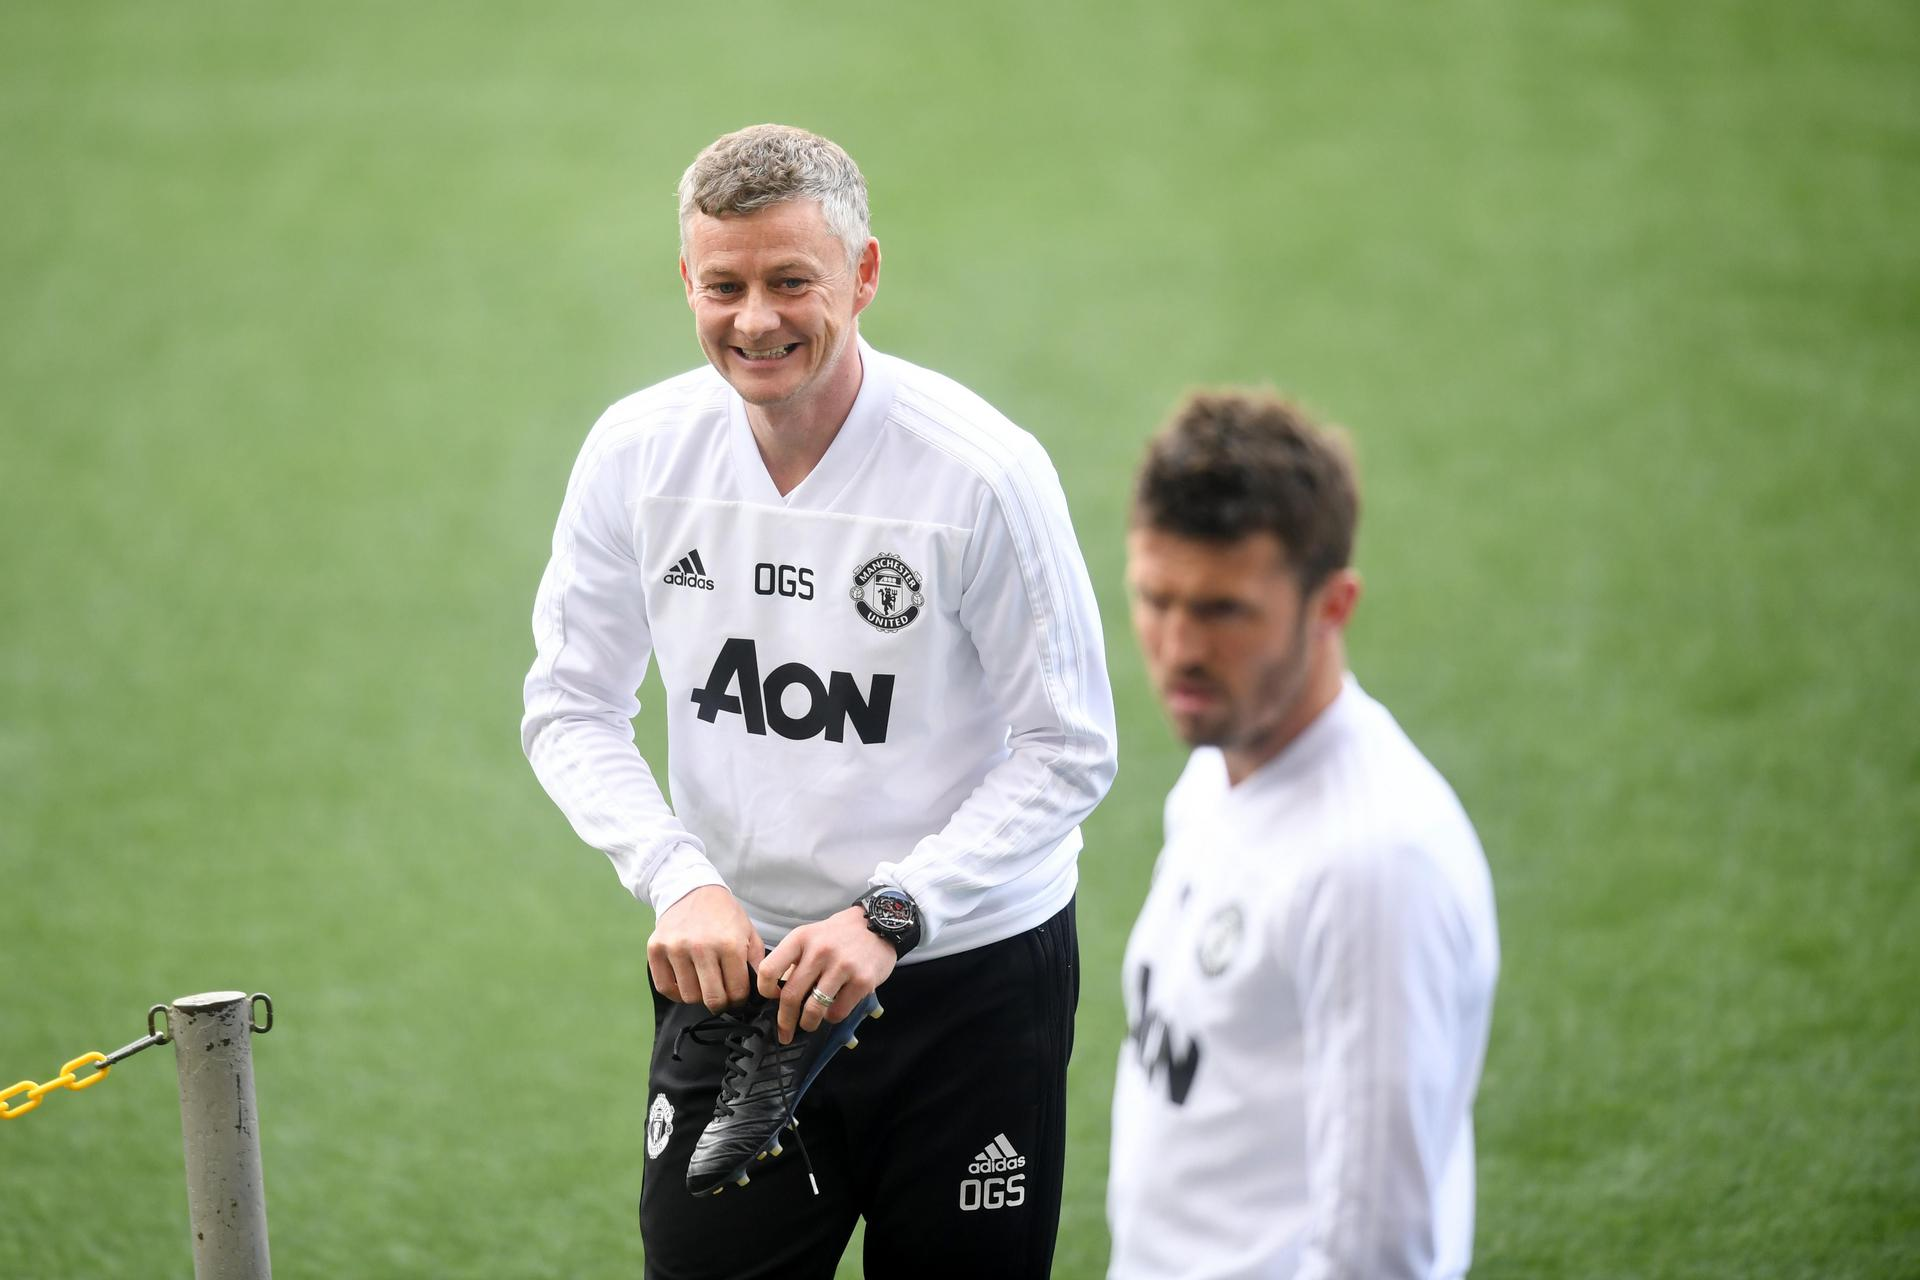 Ole Gunnar Solskjaer putting his boots on.